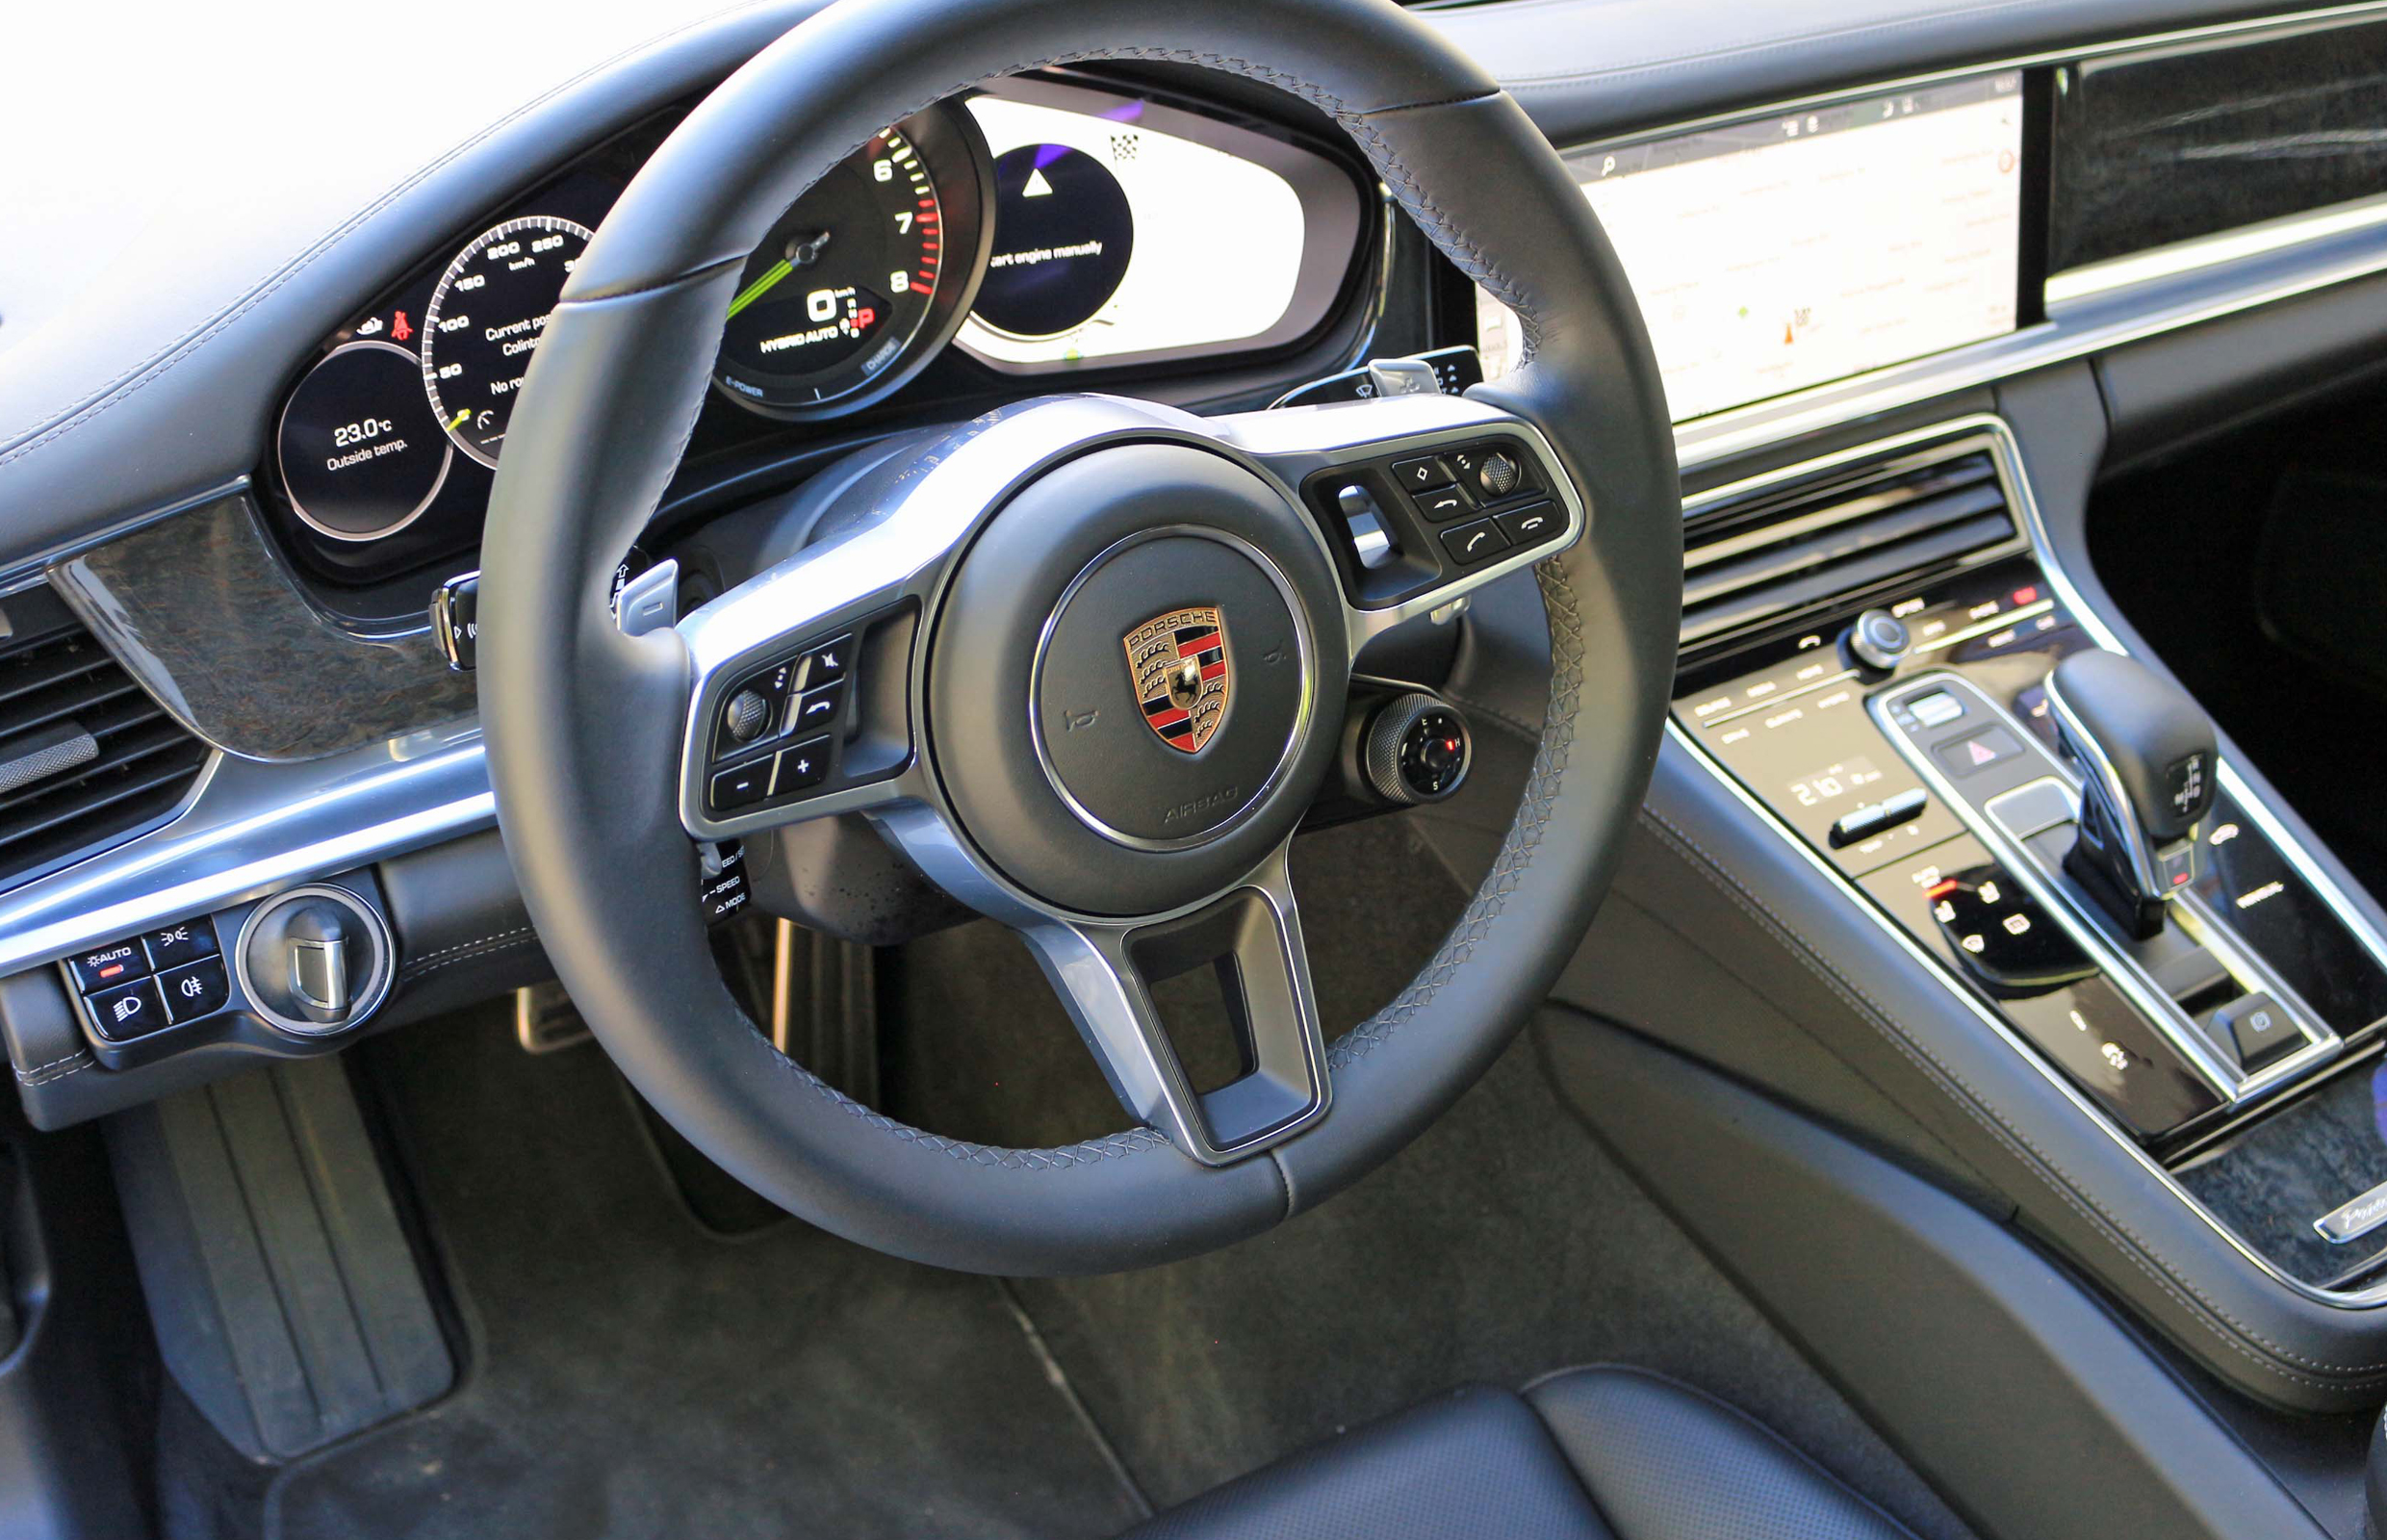 2018 Porsche Panamera 4 E Hybrid Interior Cockpit And Dash (View 7 of 10)